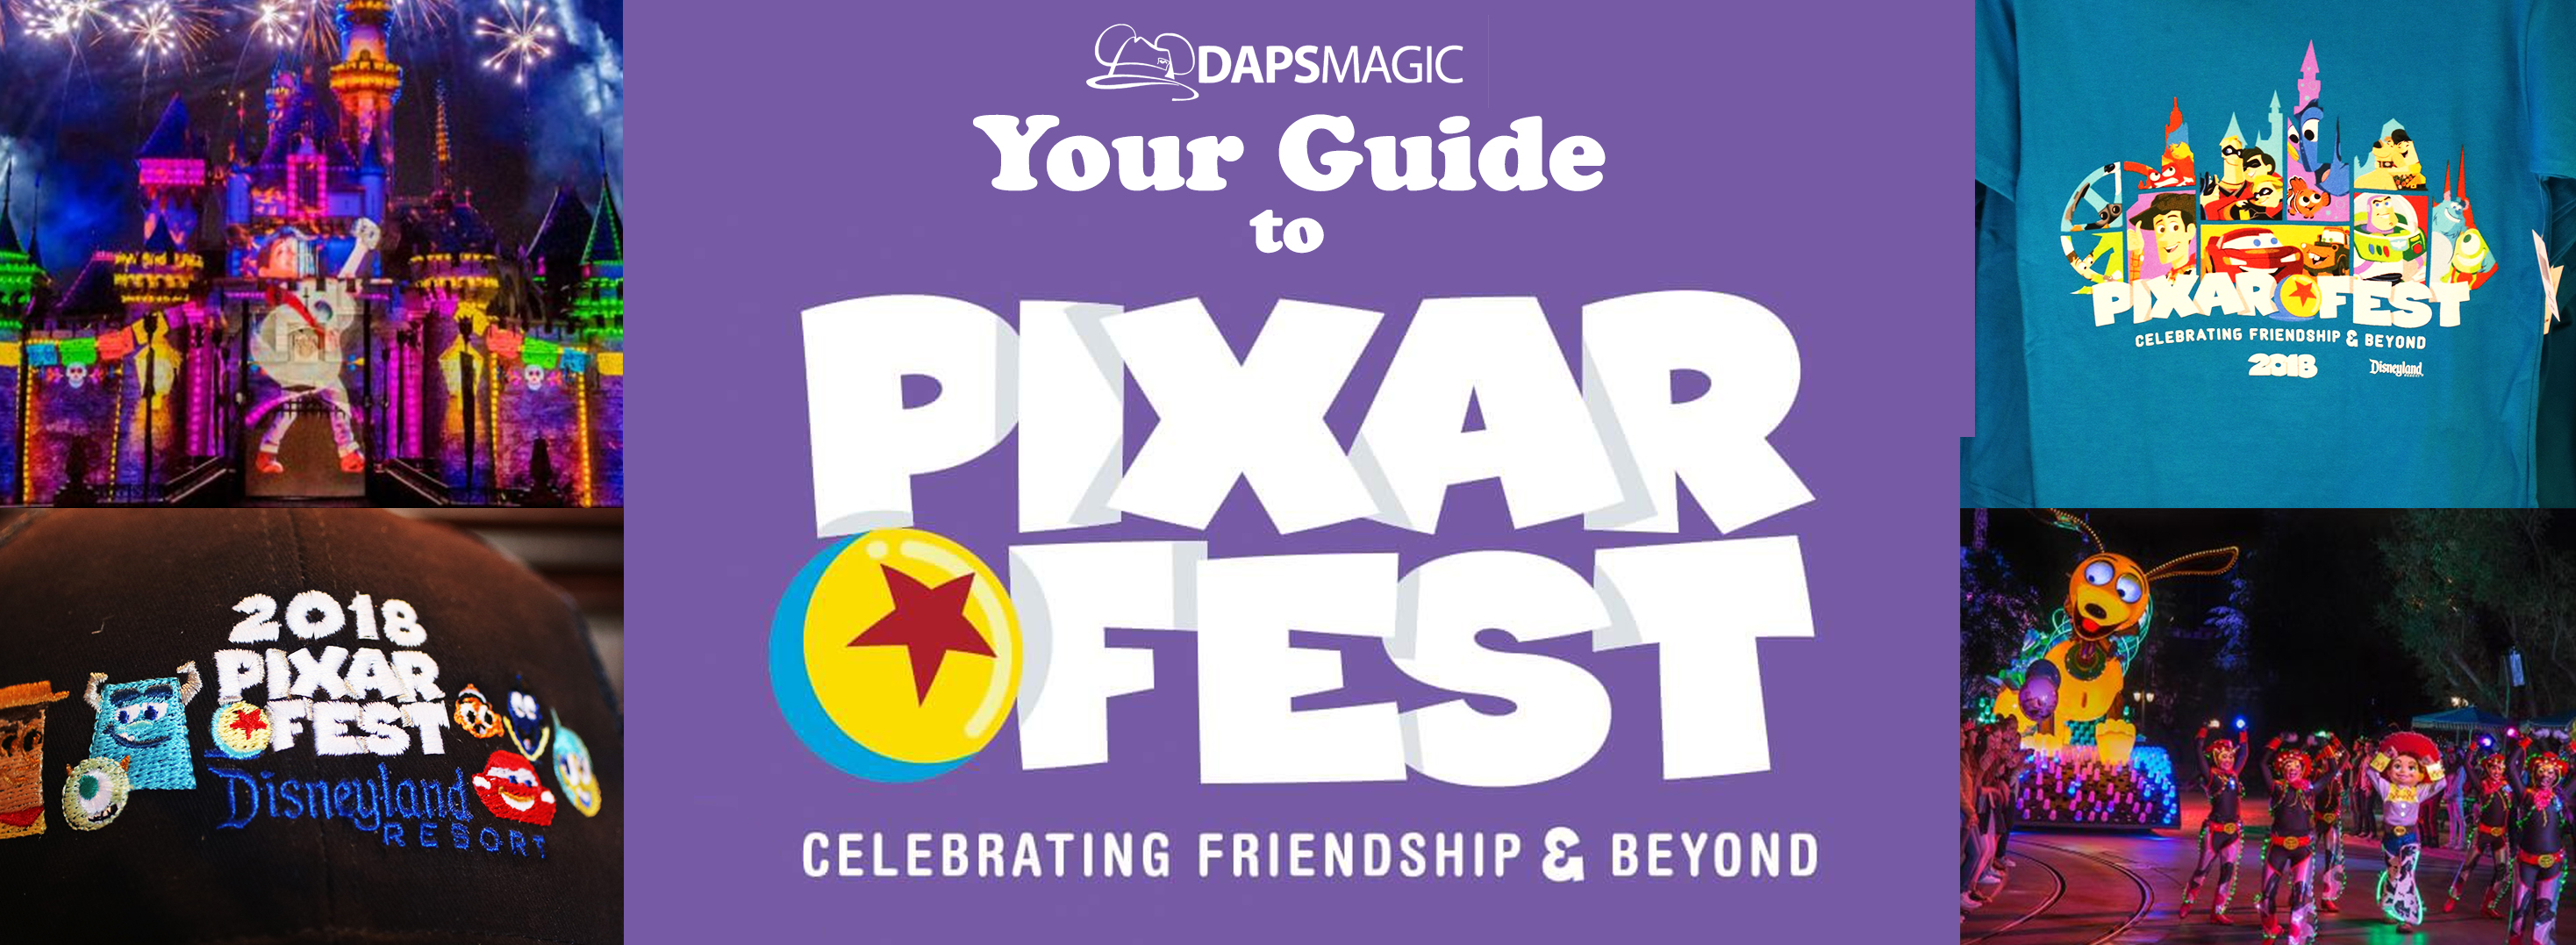 Your Guide To Pixar Fest at the Disneyland Resort